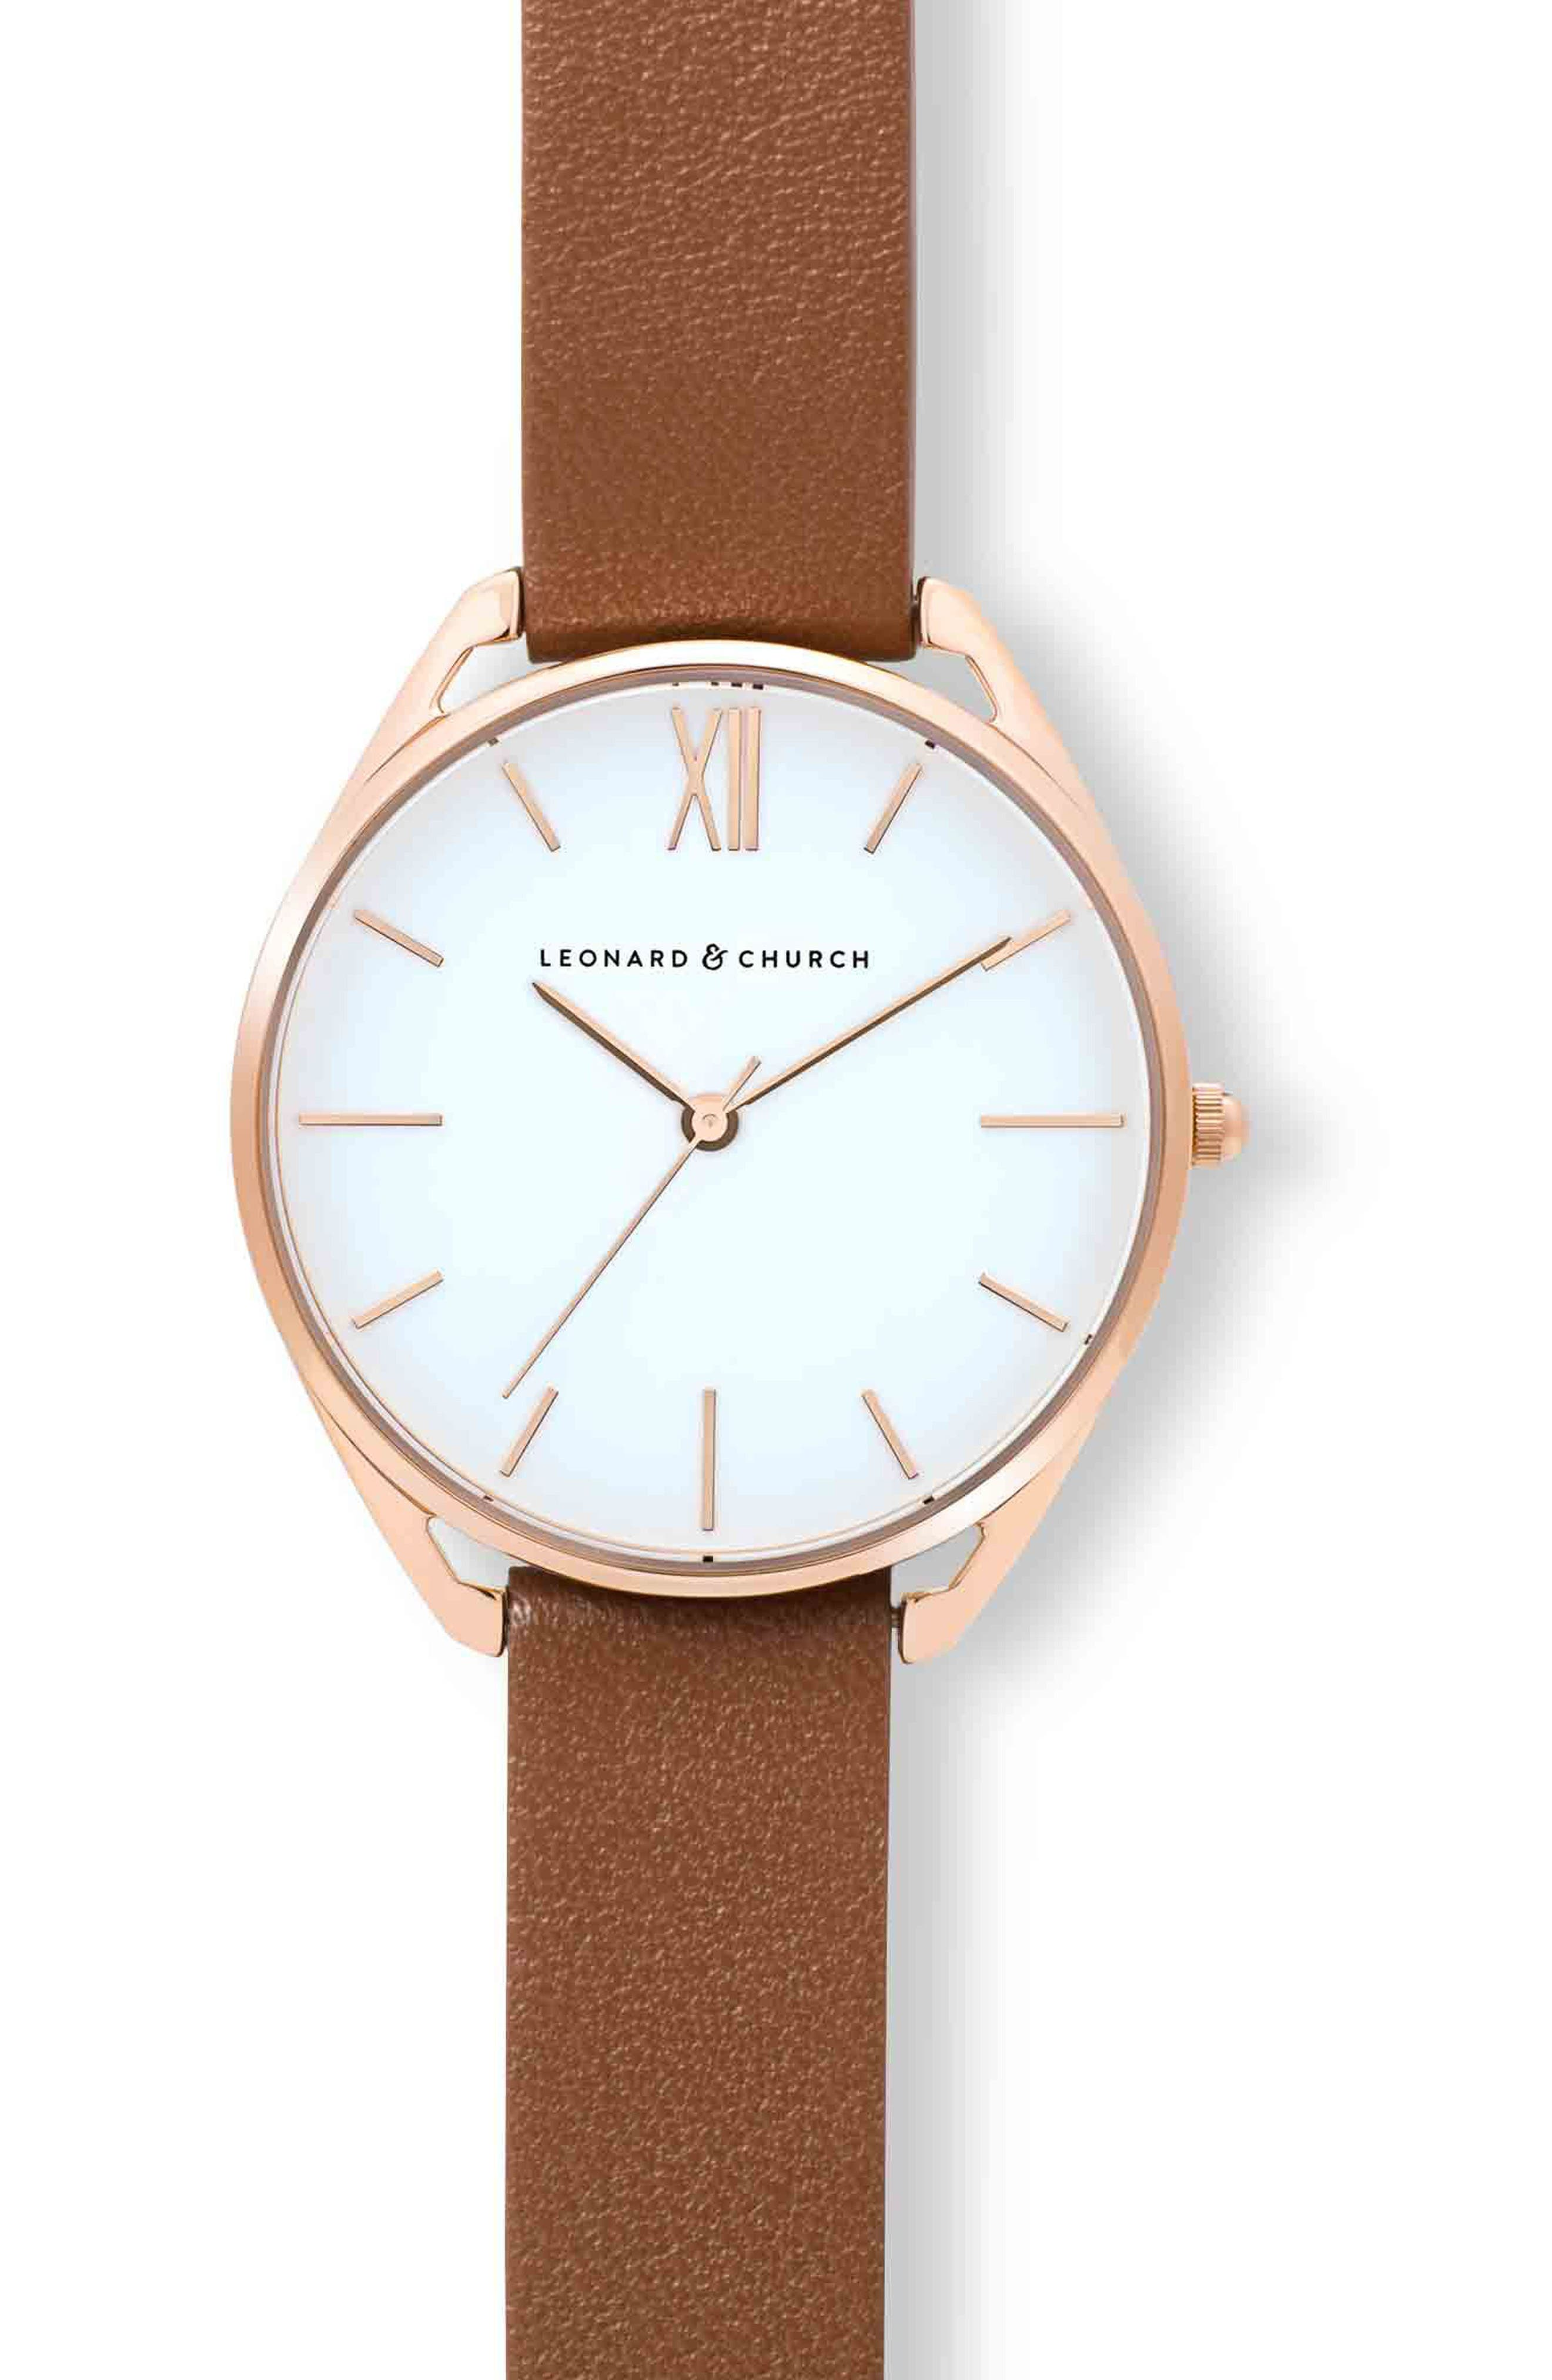 Leonard & Church Chelsea Leather Strap Watch, 34mm,                             Alternate thumbnail 4, color,                             Brown/ White/ Rose Gold